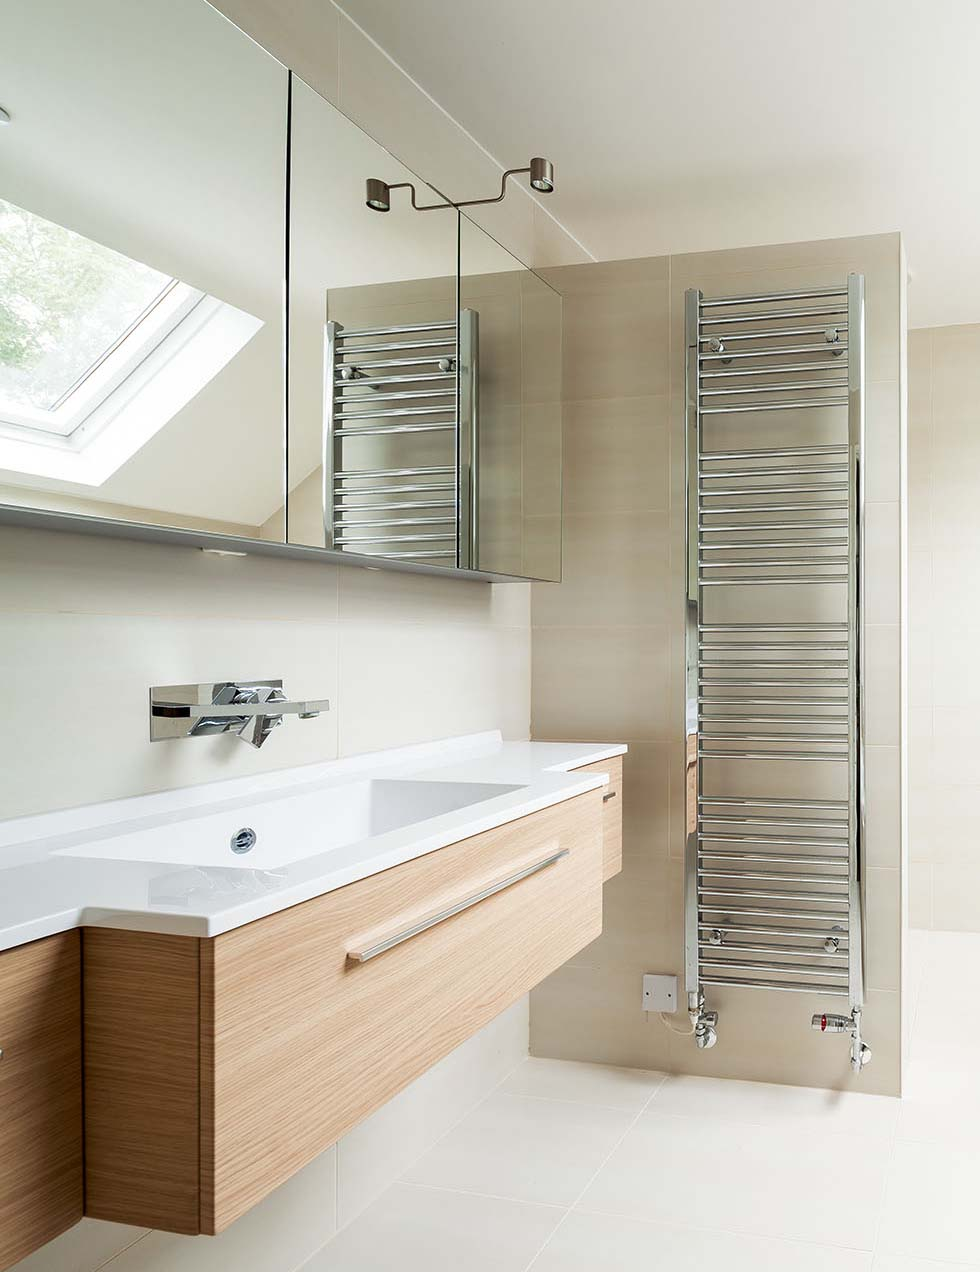 Wall-mounted heated towel rails in the bathroom